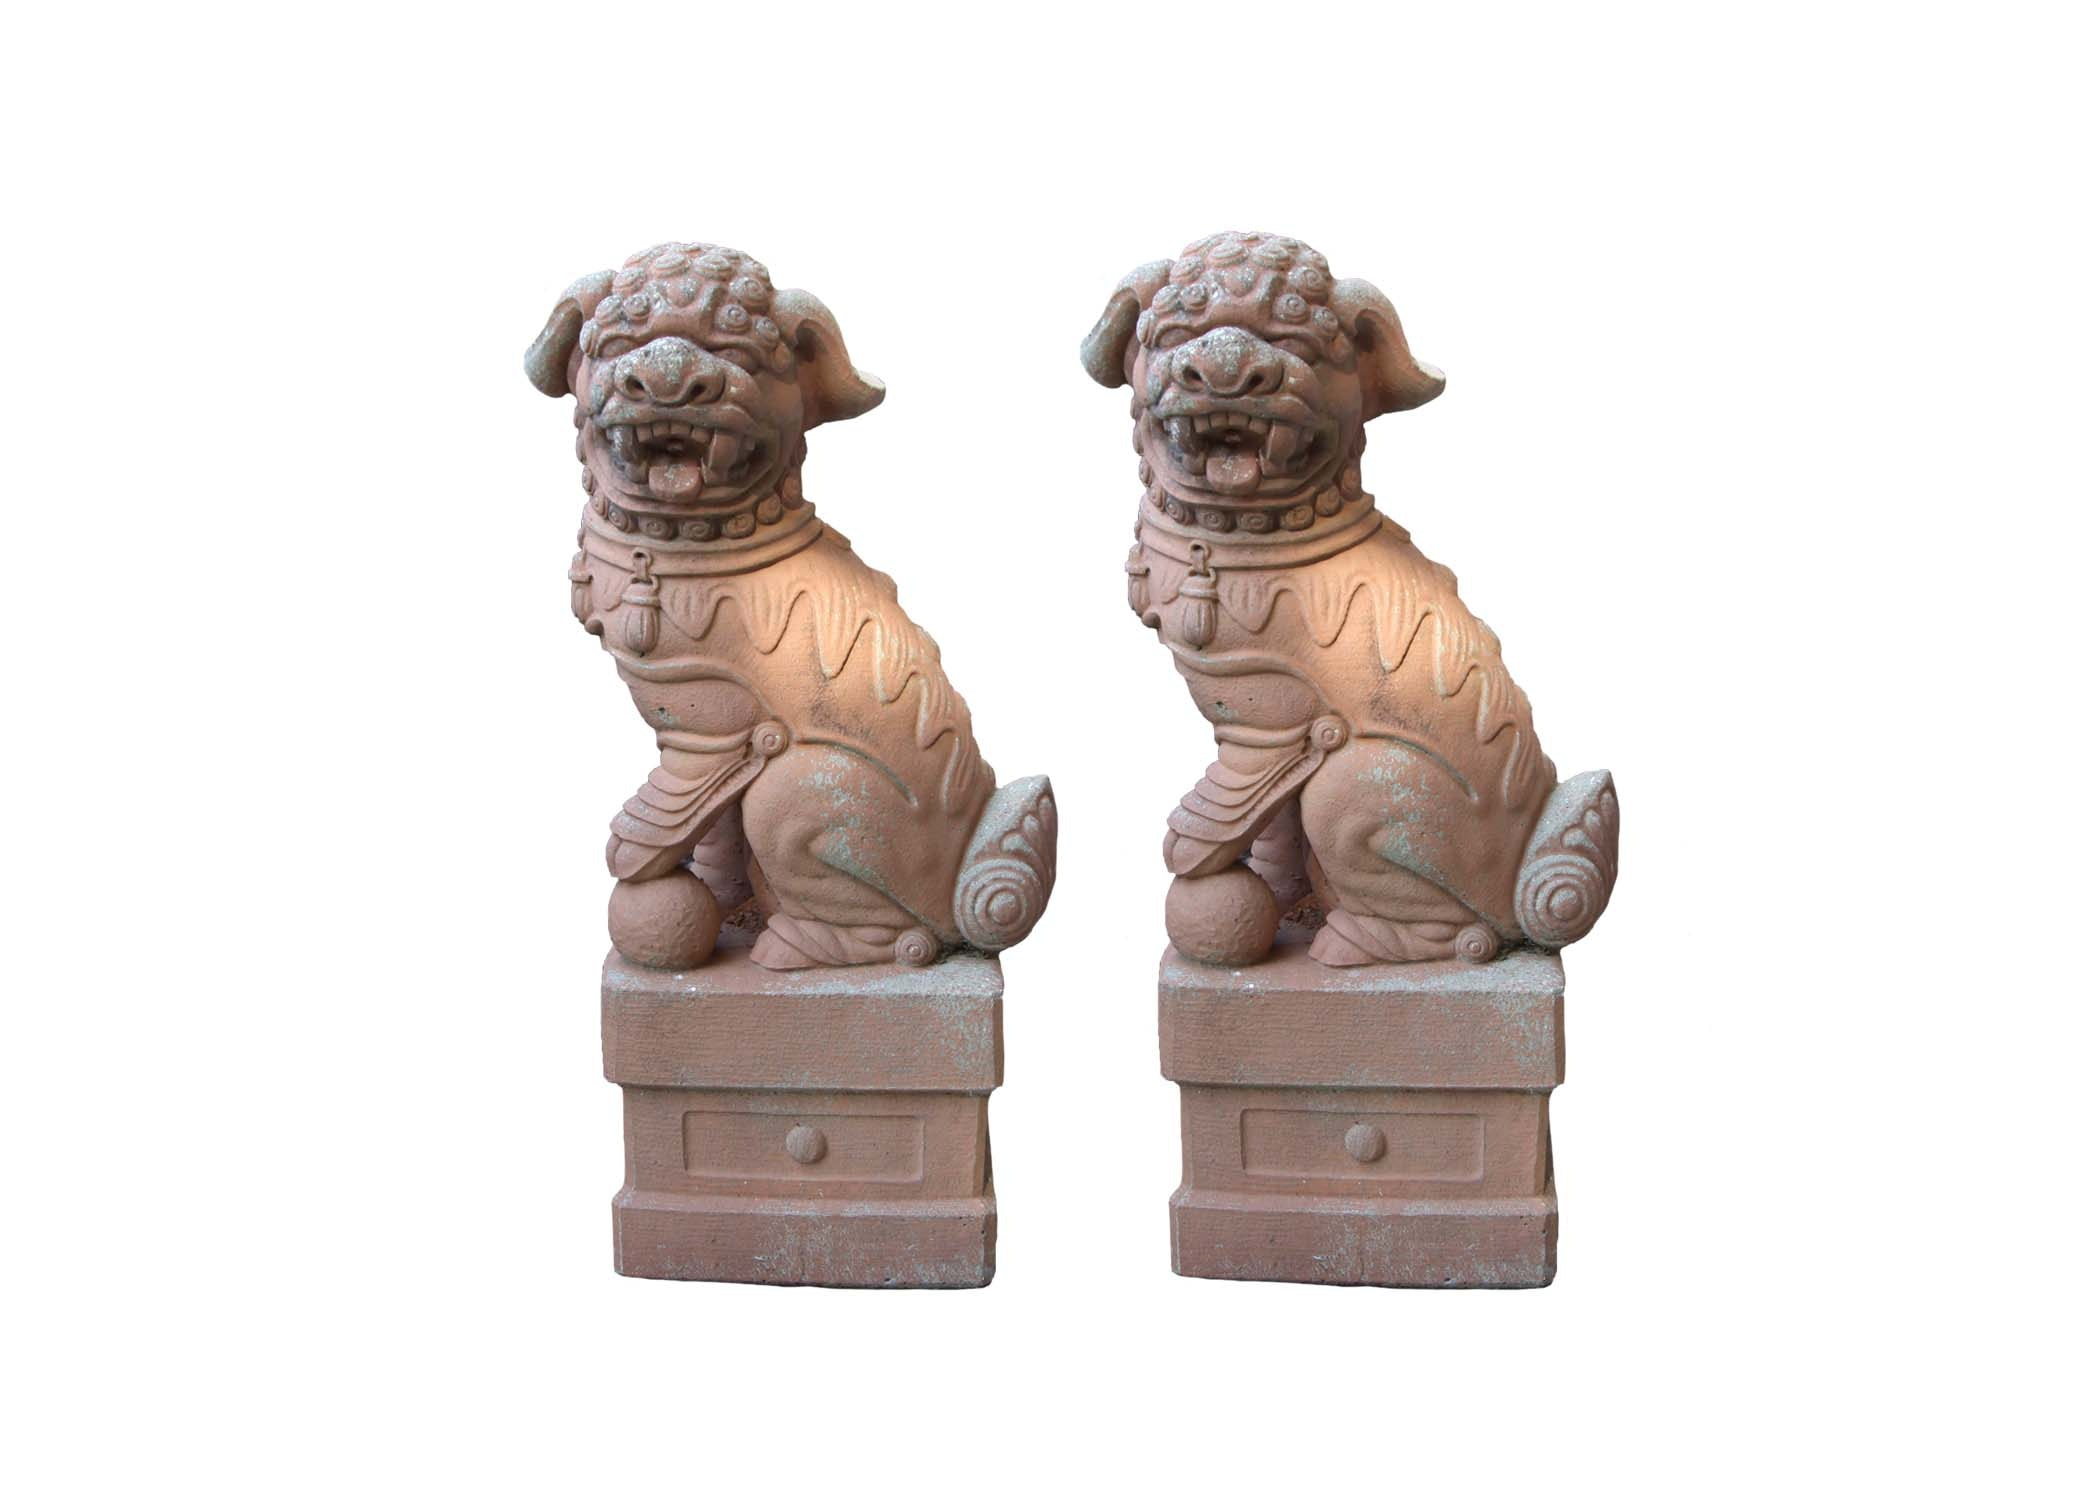 Chinese Imperial Garden Lion Statues